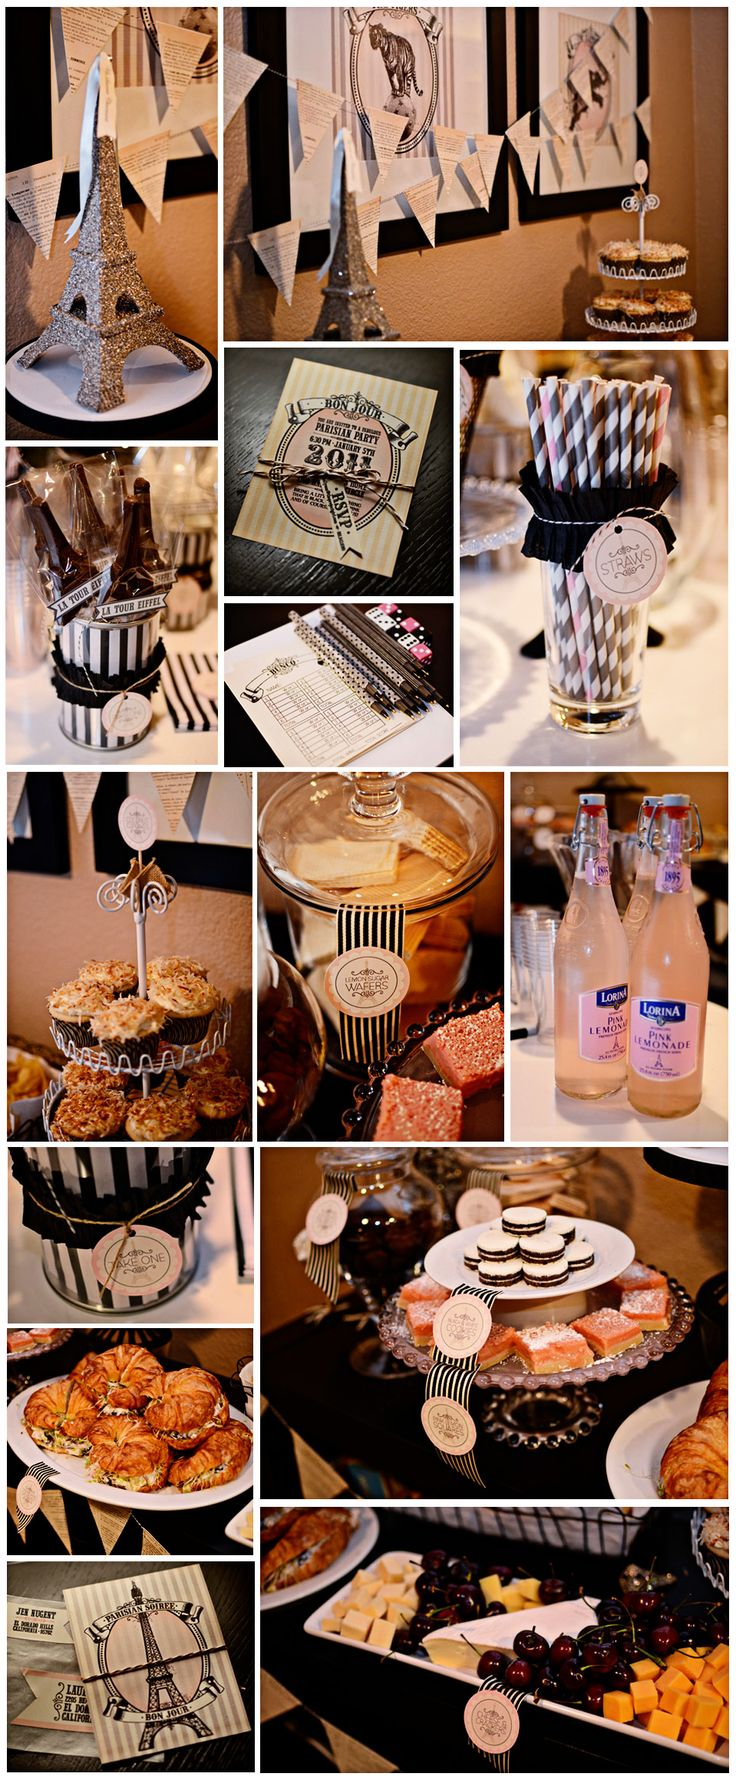 paris themed partyParisians Parties, Paris Parts, Birthday Parties, Theme Parties, Paris Theme, Parties Ideas, Bridal Shower, Parties Food, Themed Parties